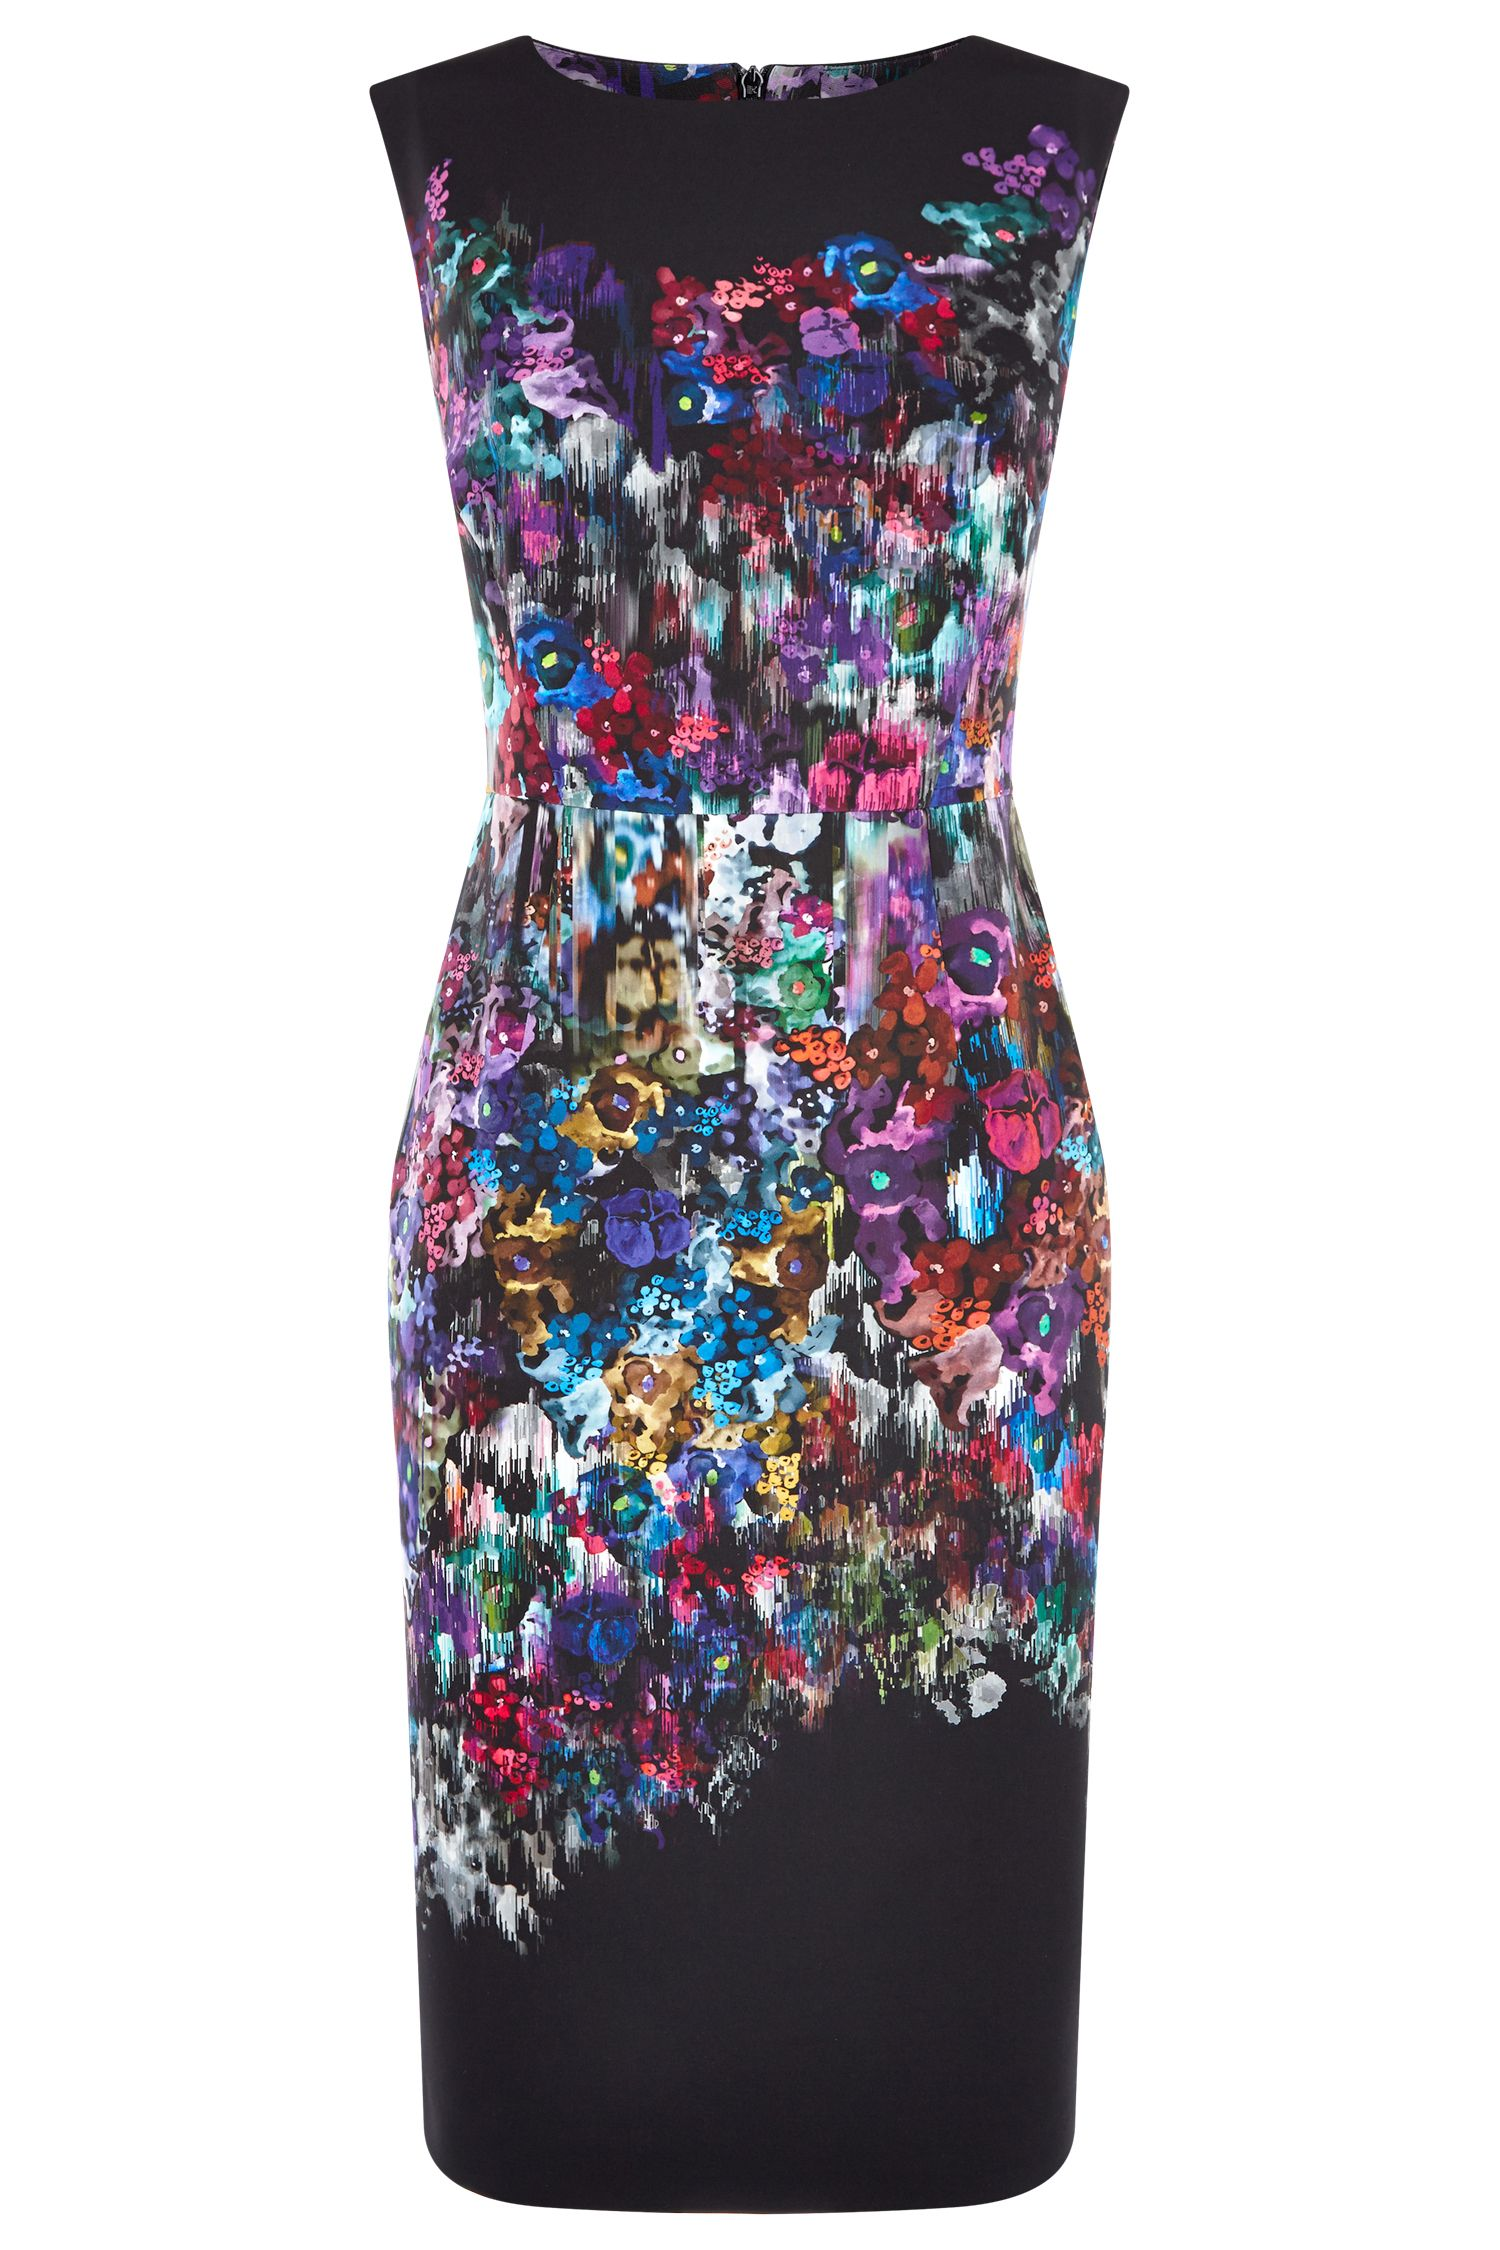 Fenn Wright Manson Northern Lights Dress, Multi-Coloured